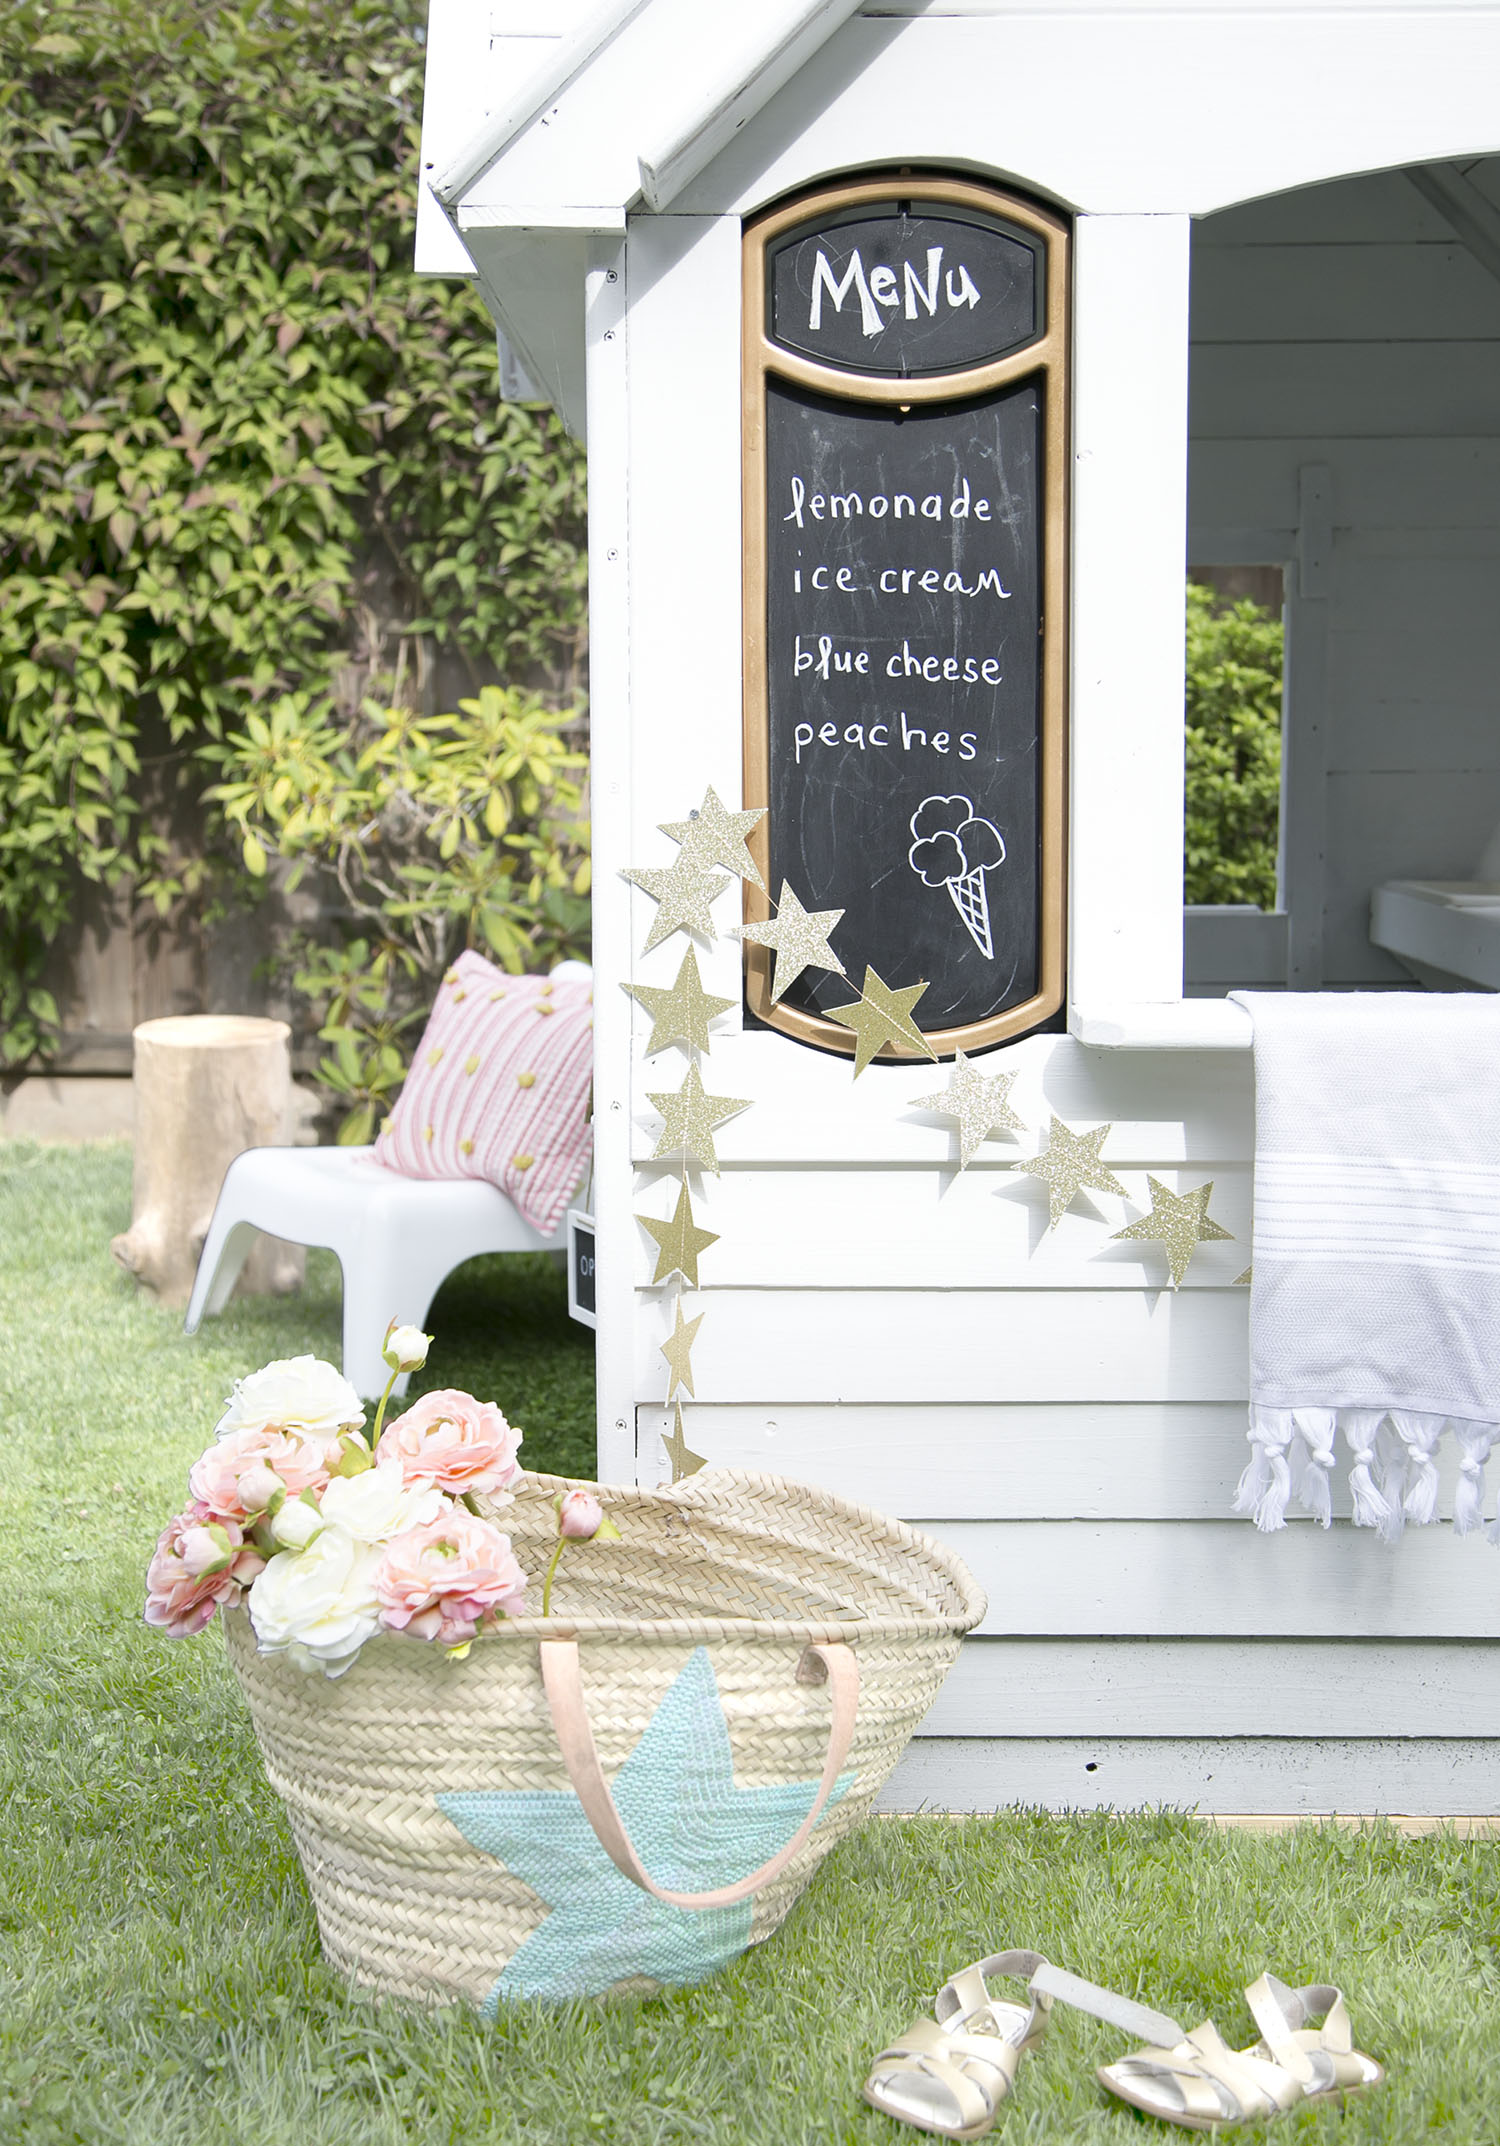 chalkboard menu and market basket with kids playhouse